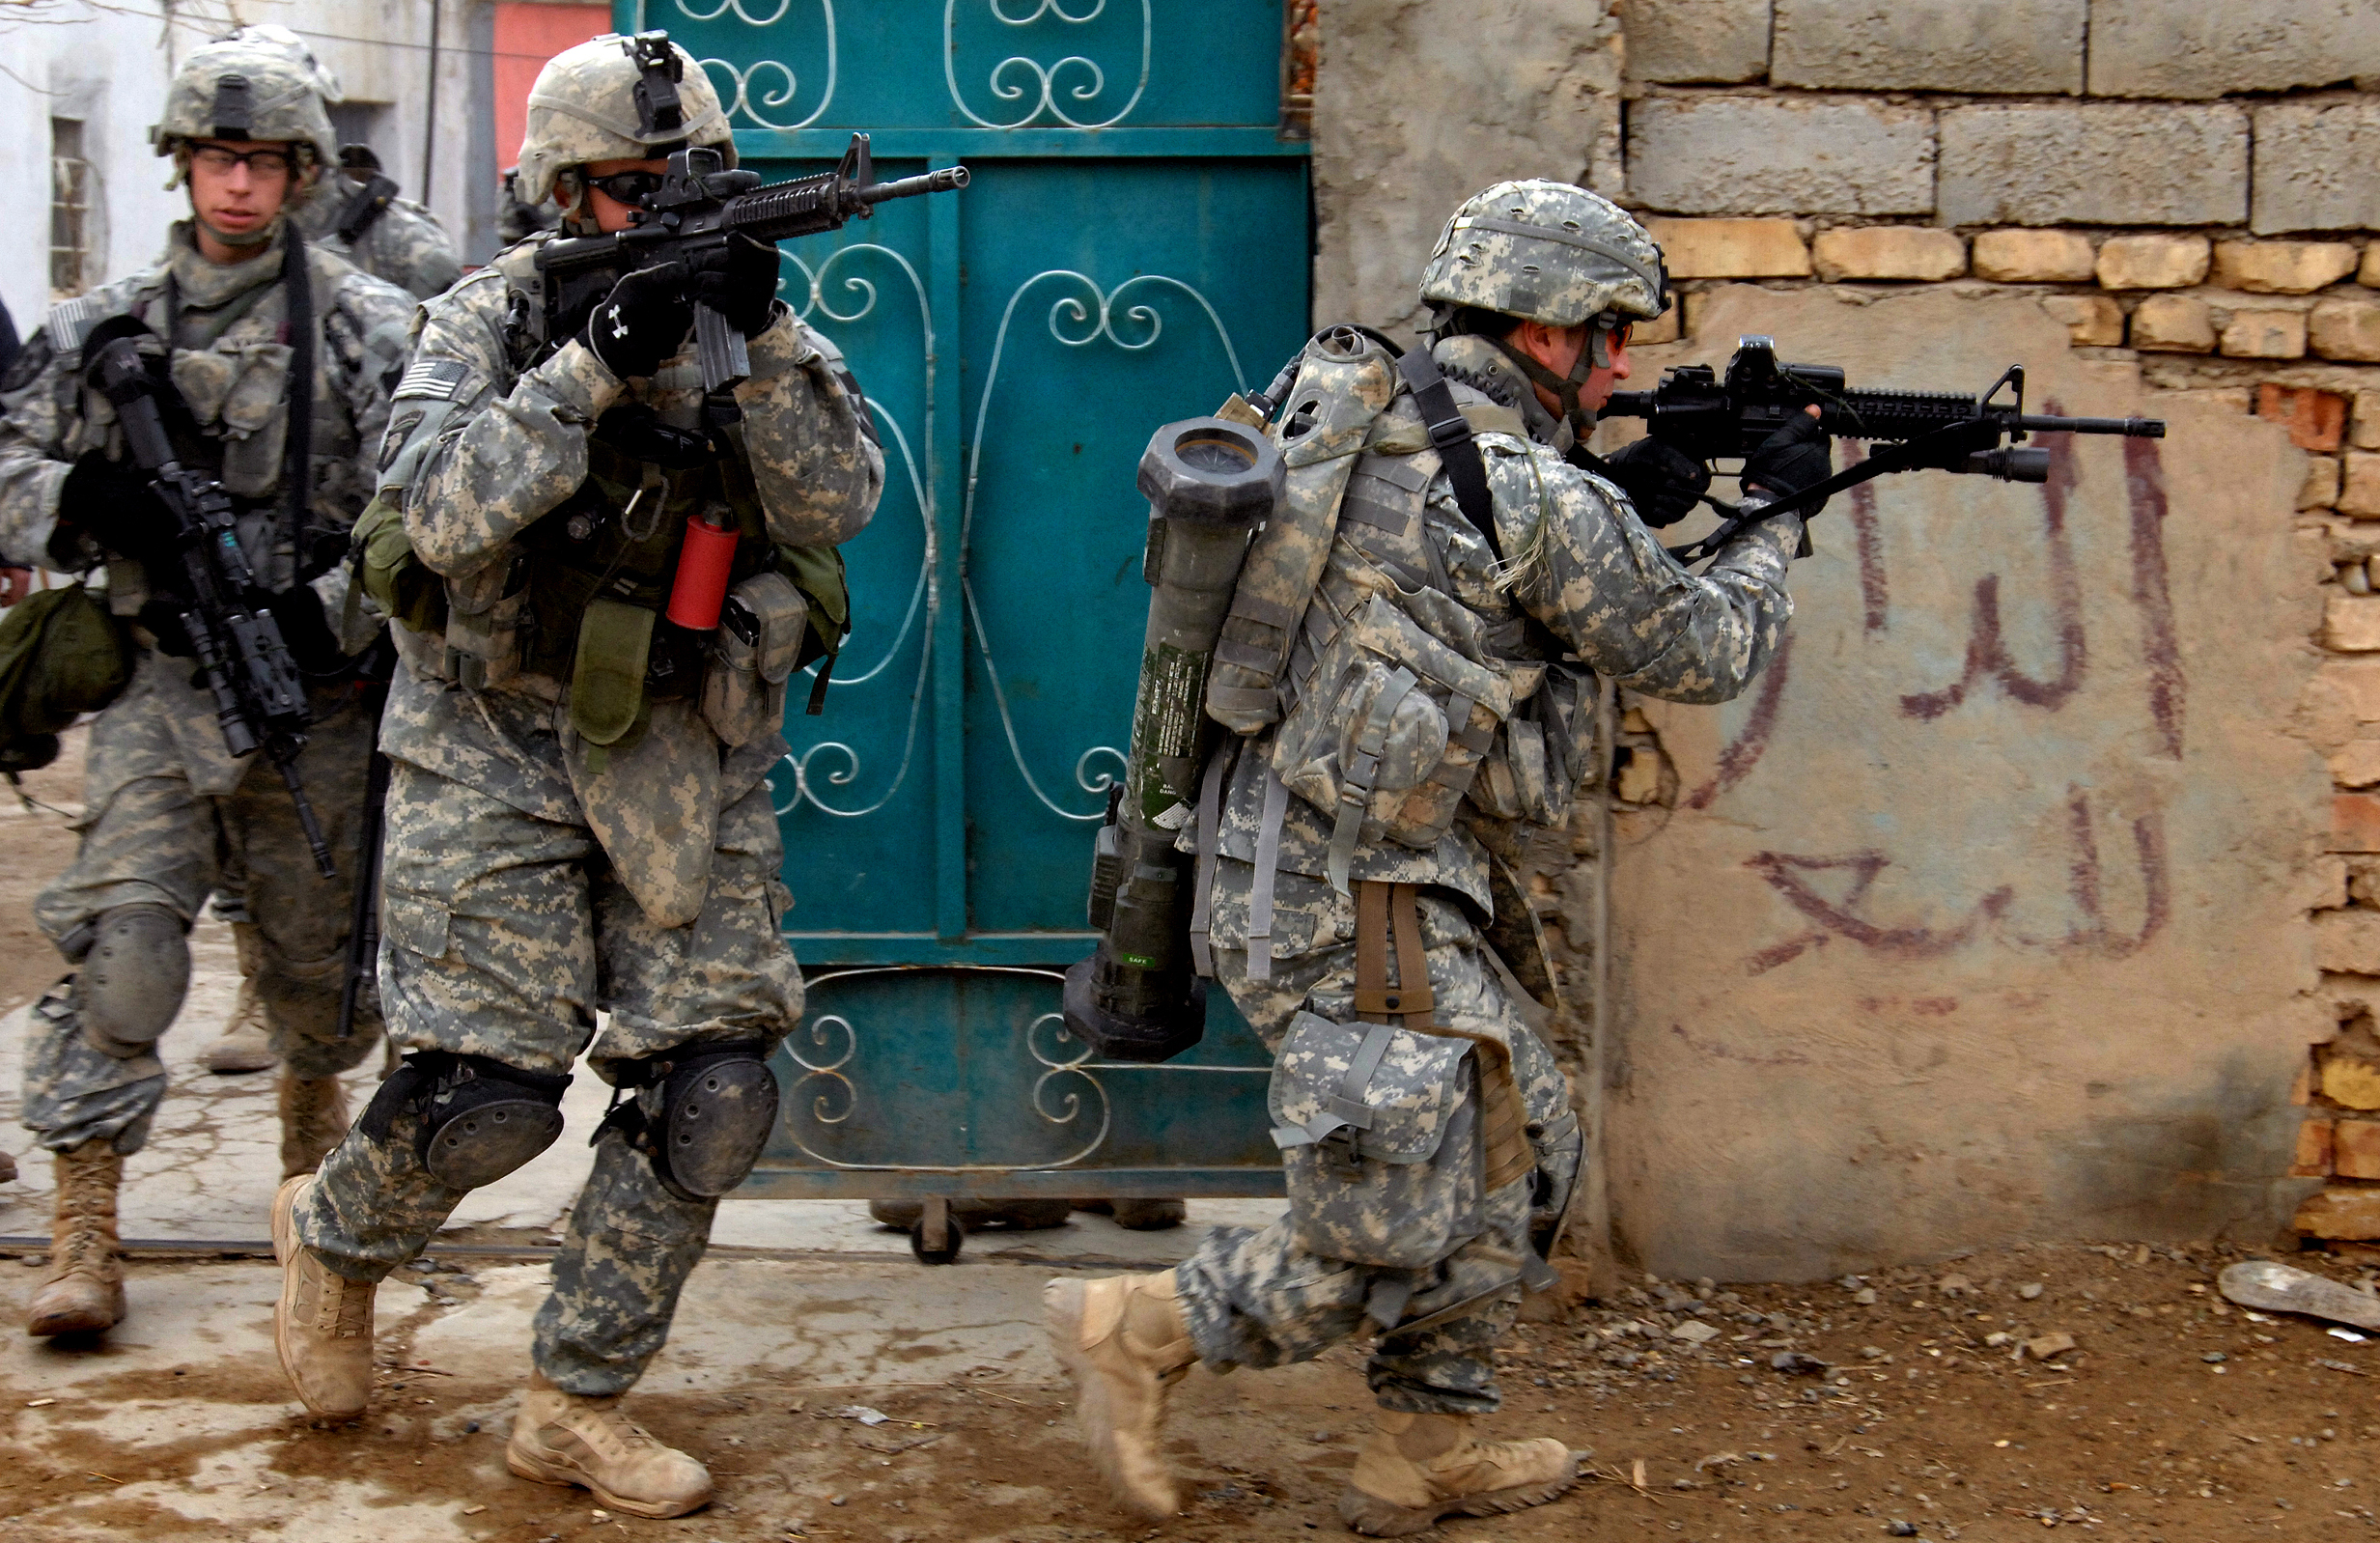 US to Deploy 600 More Troops to Iraq for Mosul Offensive